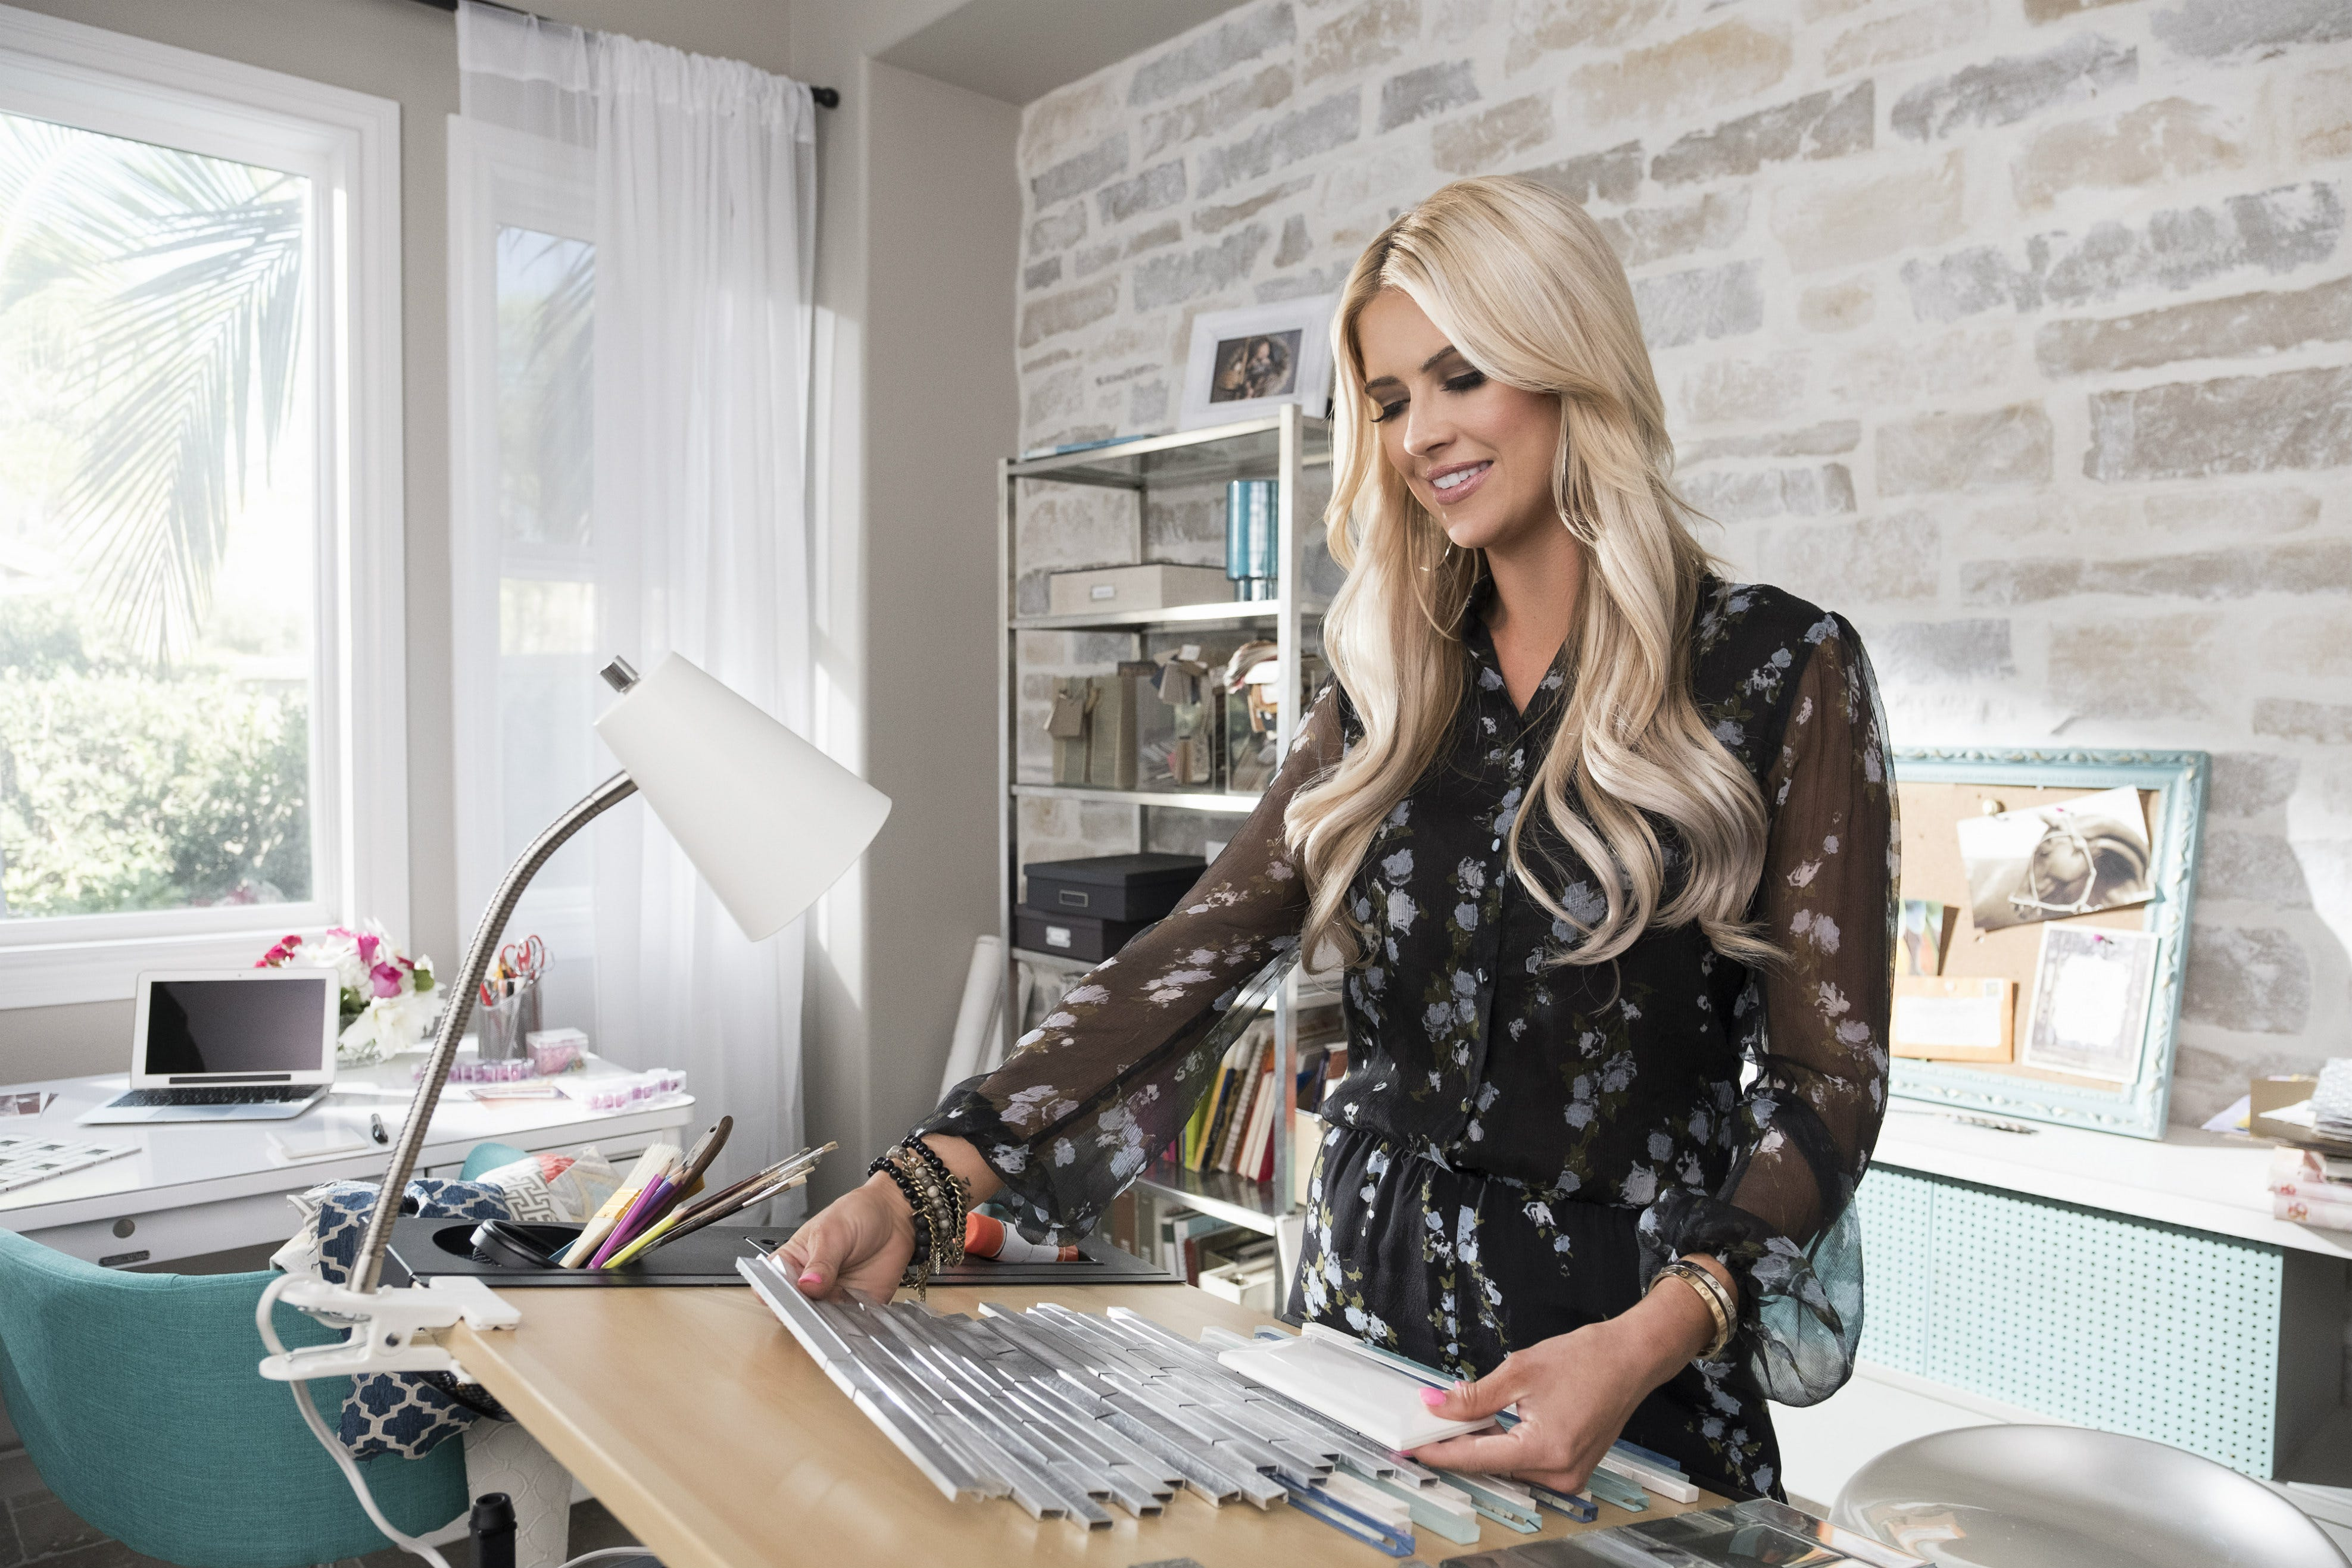 Christina Anstead Hgtv Star Talks Pregnancy Ex Tarek El Moussa,Curb Appeal Ranch Home Exterior Remodel Before And After